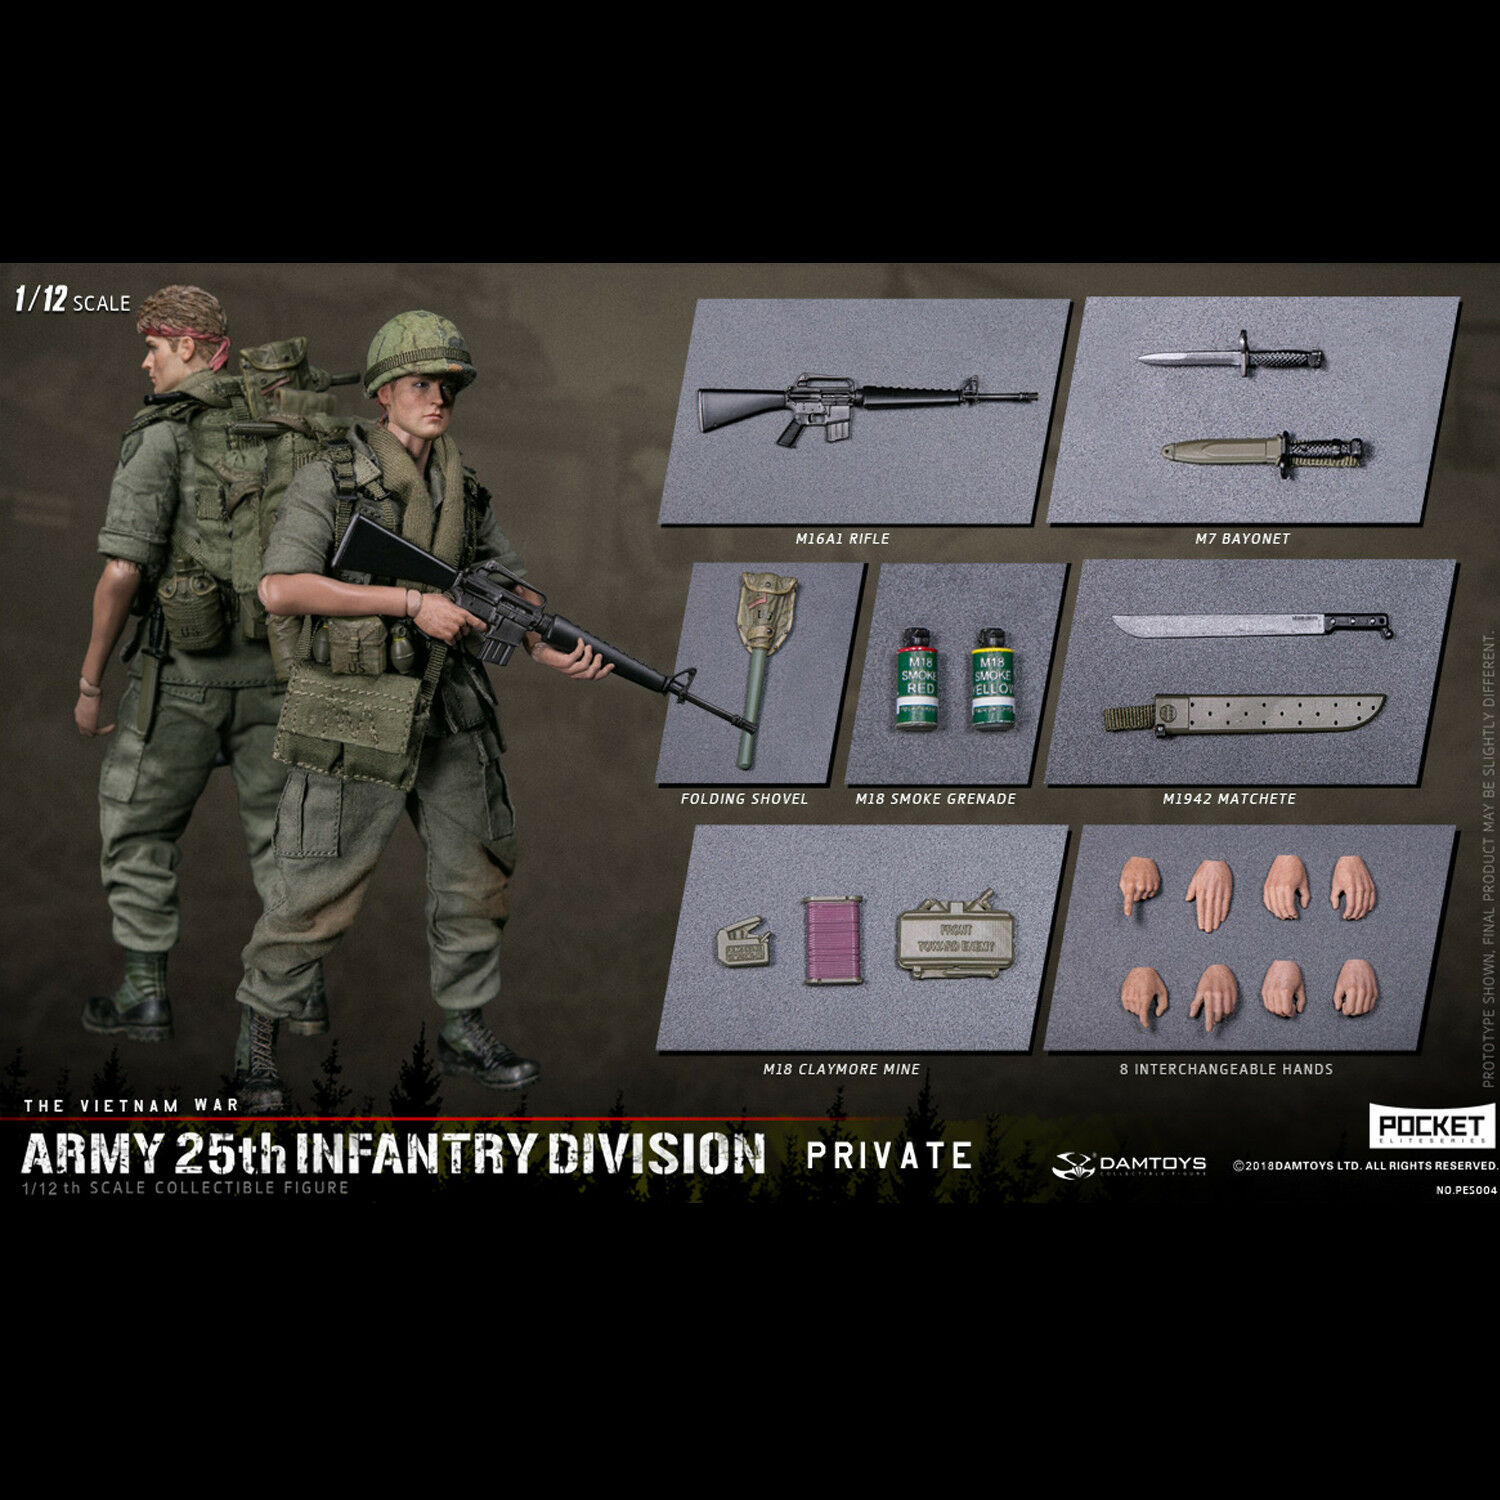 DAMTOYS 1/12th PES004 Army 25th Infantry Division Private The Vietnam War Figure